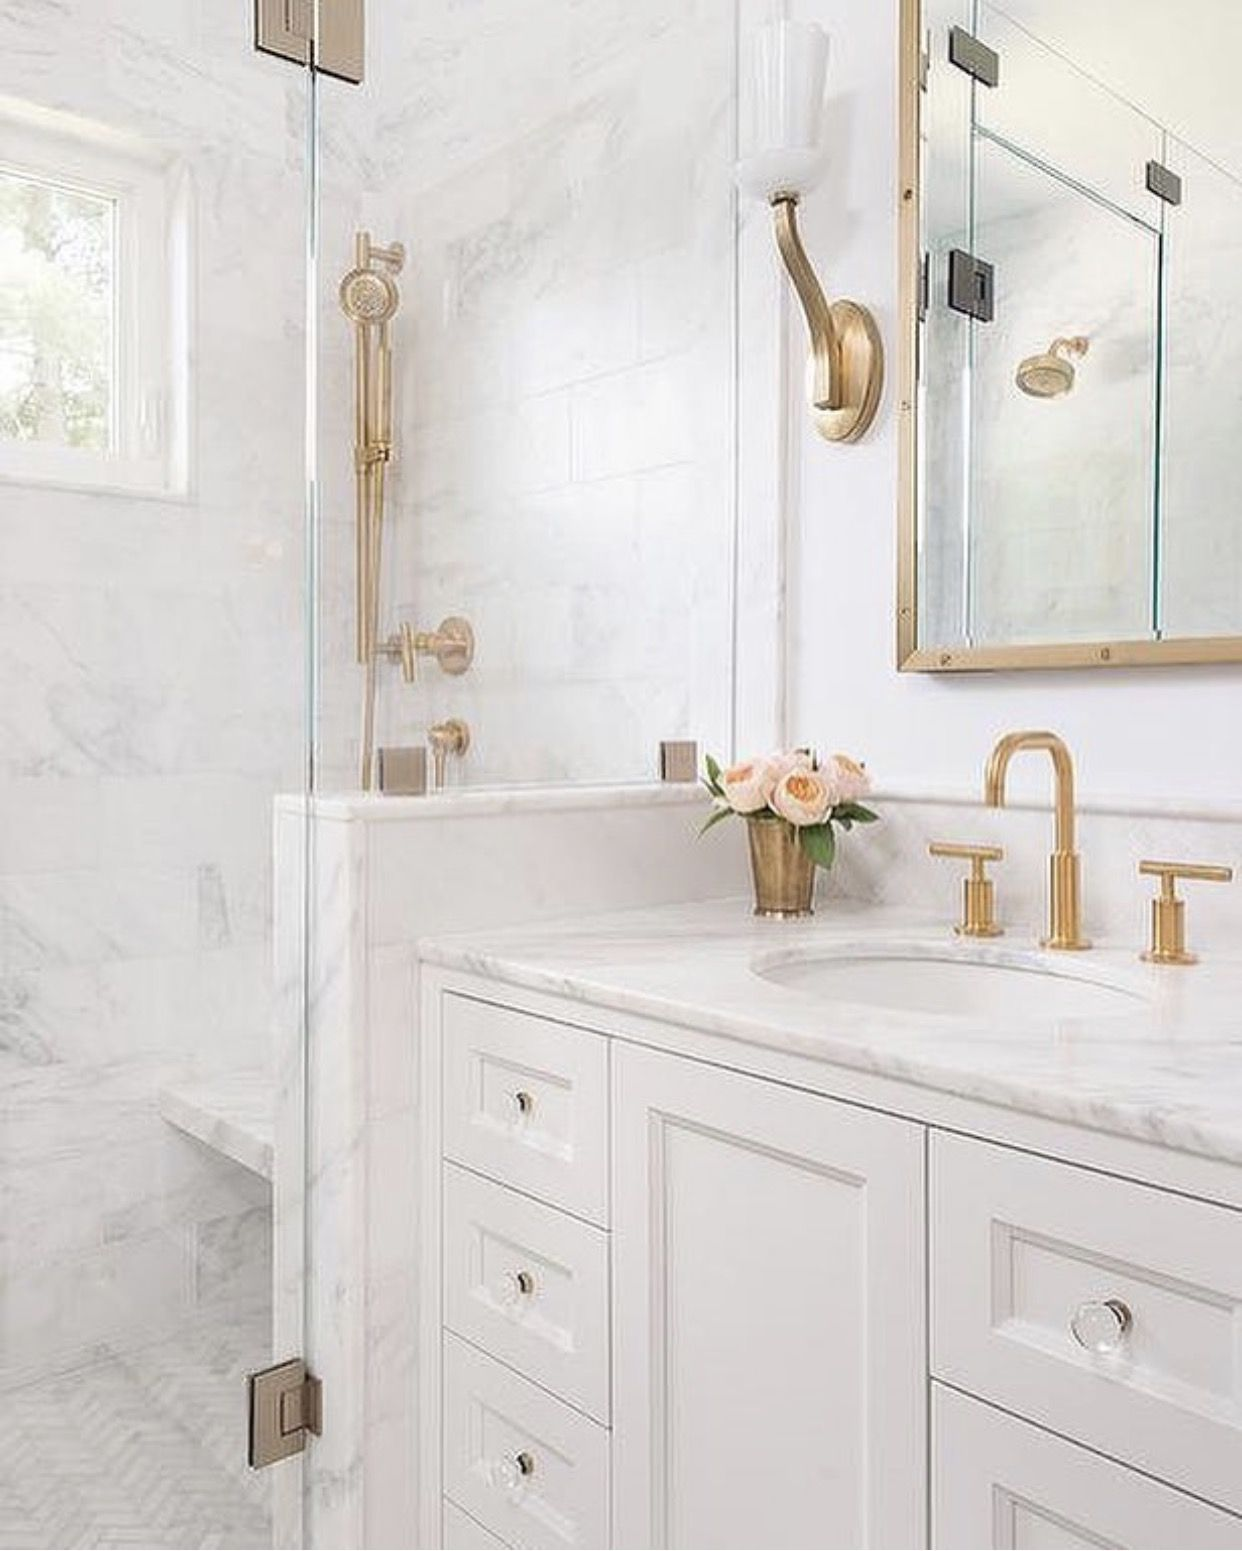 Pin by Erika Howell on Bathrooms | Pinterest | Bath, Master ...